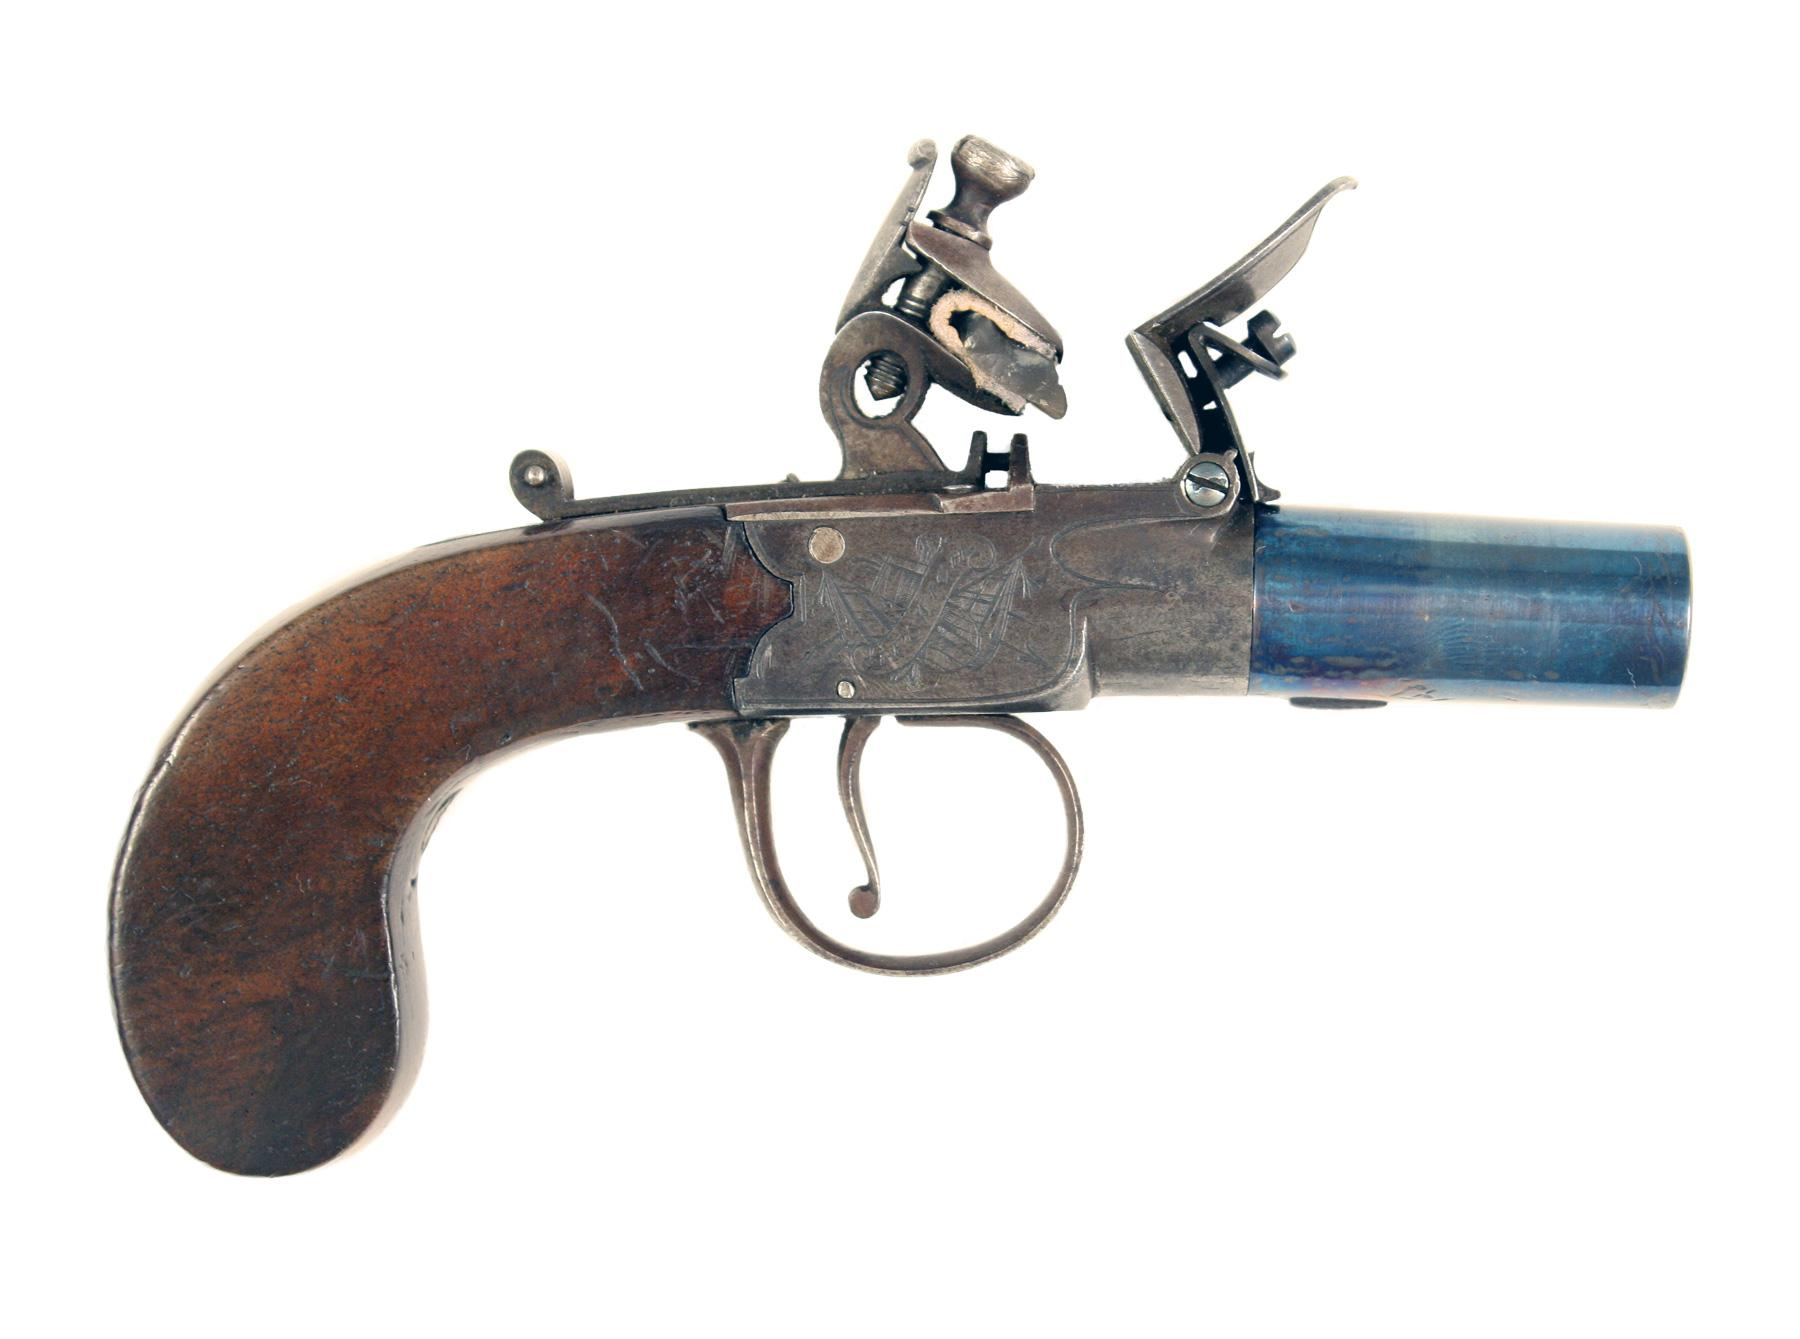 A Flintlock Pocket Pistol by Harcourt & Son